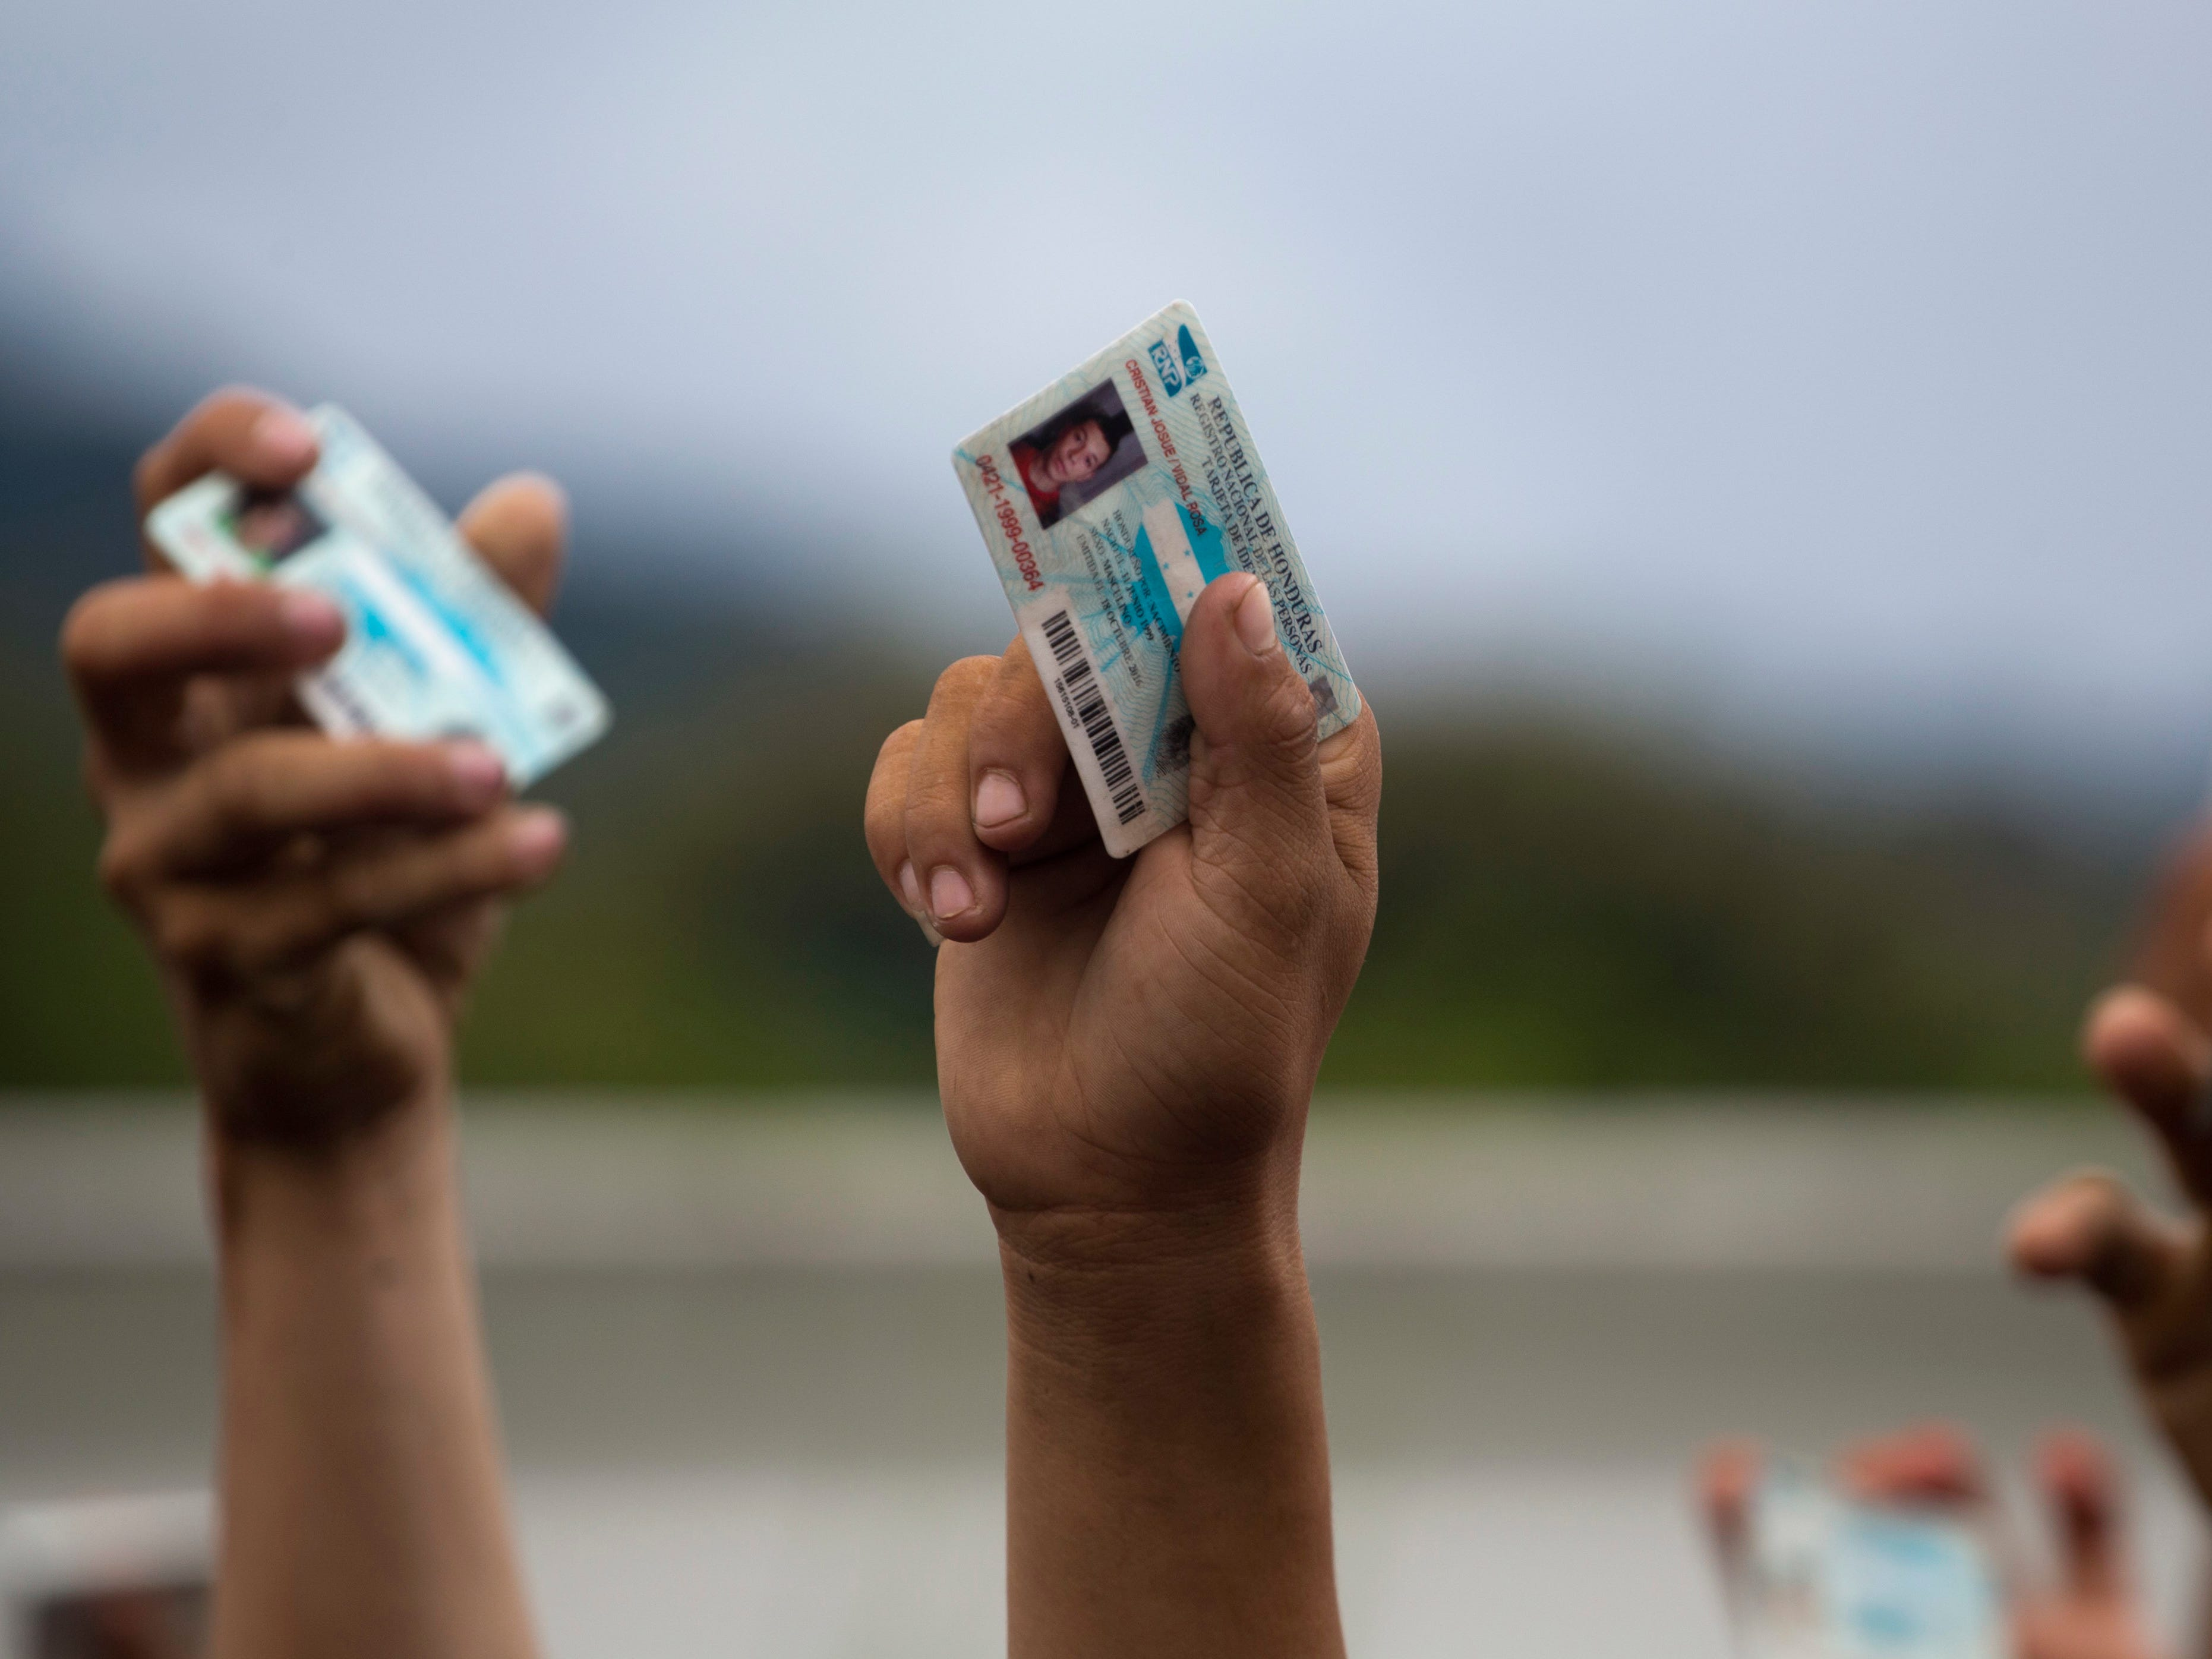 Honduran migrants holds up their national ID cards as Guatemalan police block them and their caravan after the group crossed the Honduras-Guatemala border without incident, in Esquipulas, Guatemala, Monday, Oct. 15, 2018. Police stopped the migrants for several hours but the travelers refused to return to the border and were eventually allowed to pass.  (AP Photo/Moises Castillo) ORG XMIT: XMC131